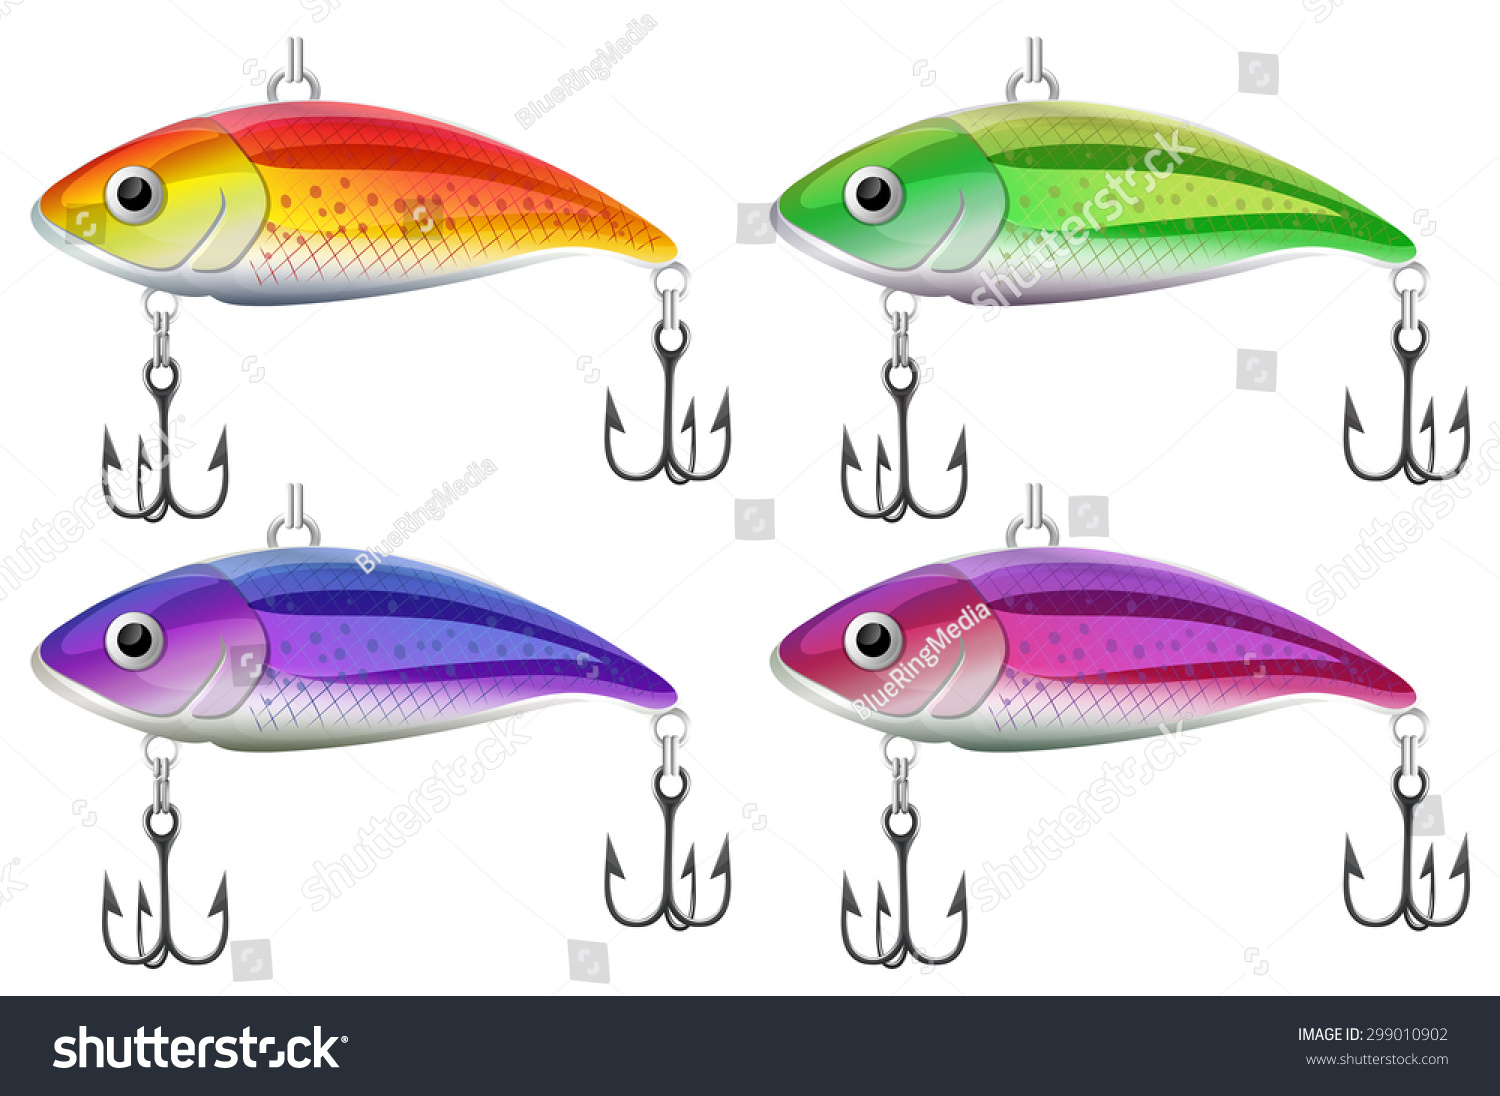 lure fishing in four different colors stock vector illustration, Hard Baits